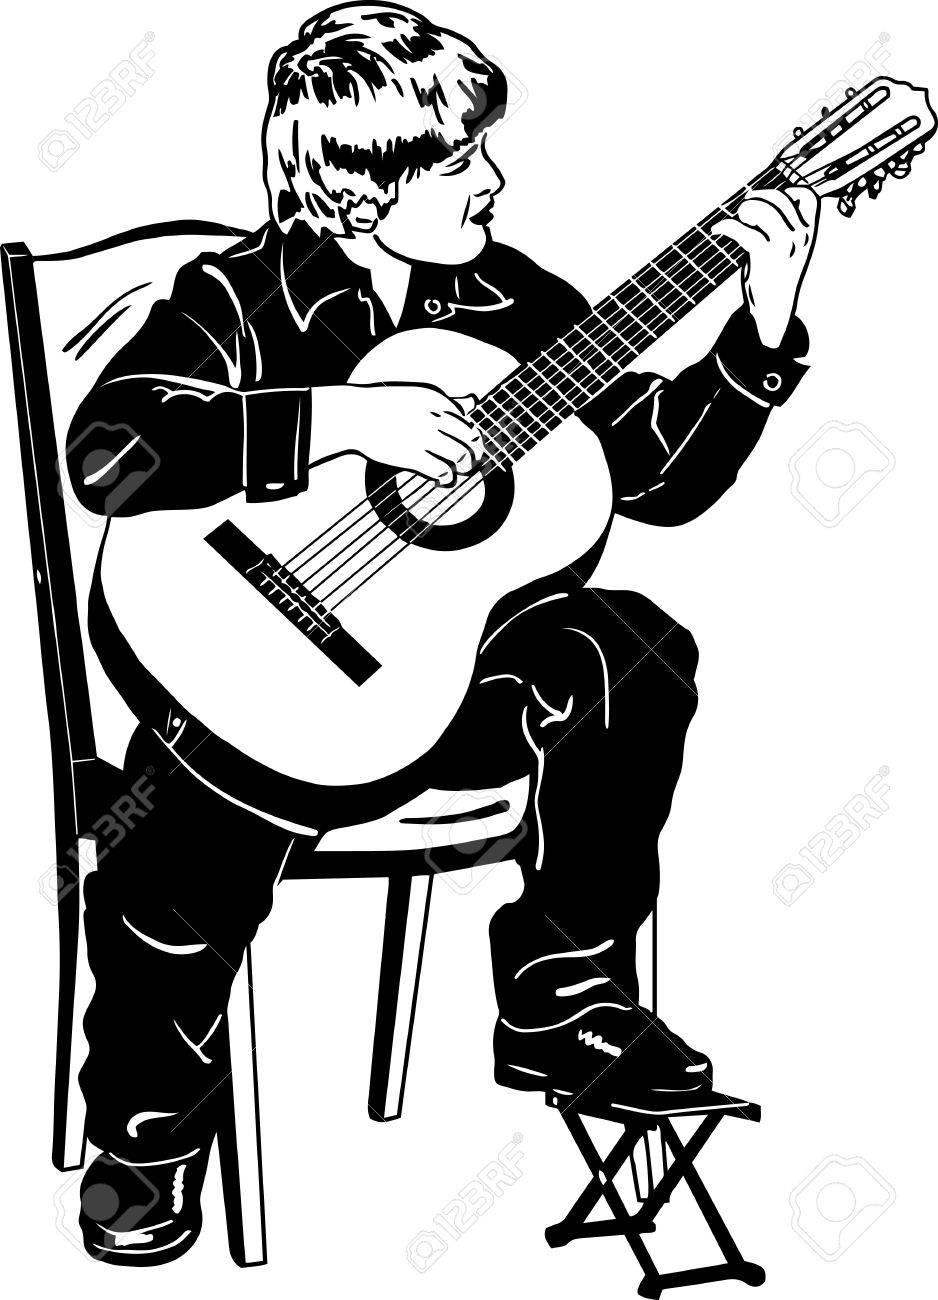 Black and white vector sketch of a boy playing music on a guitar